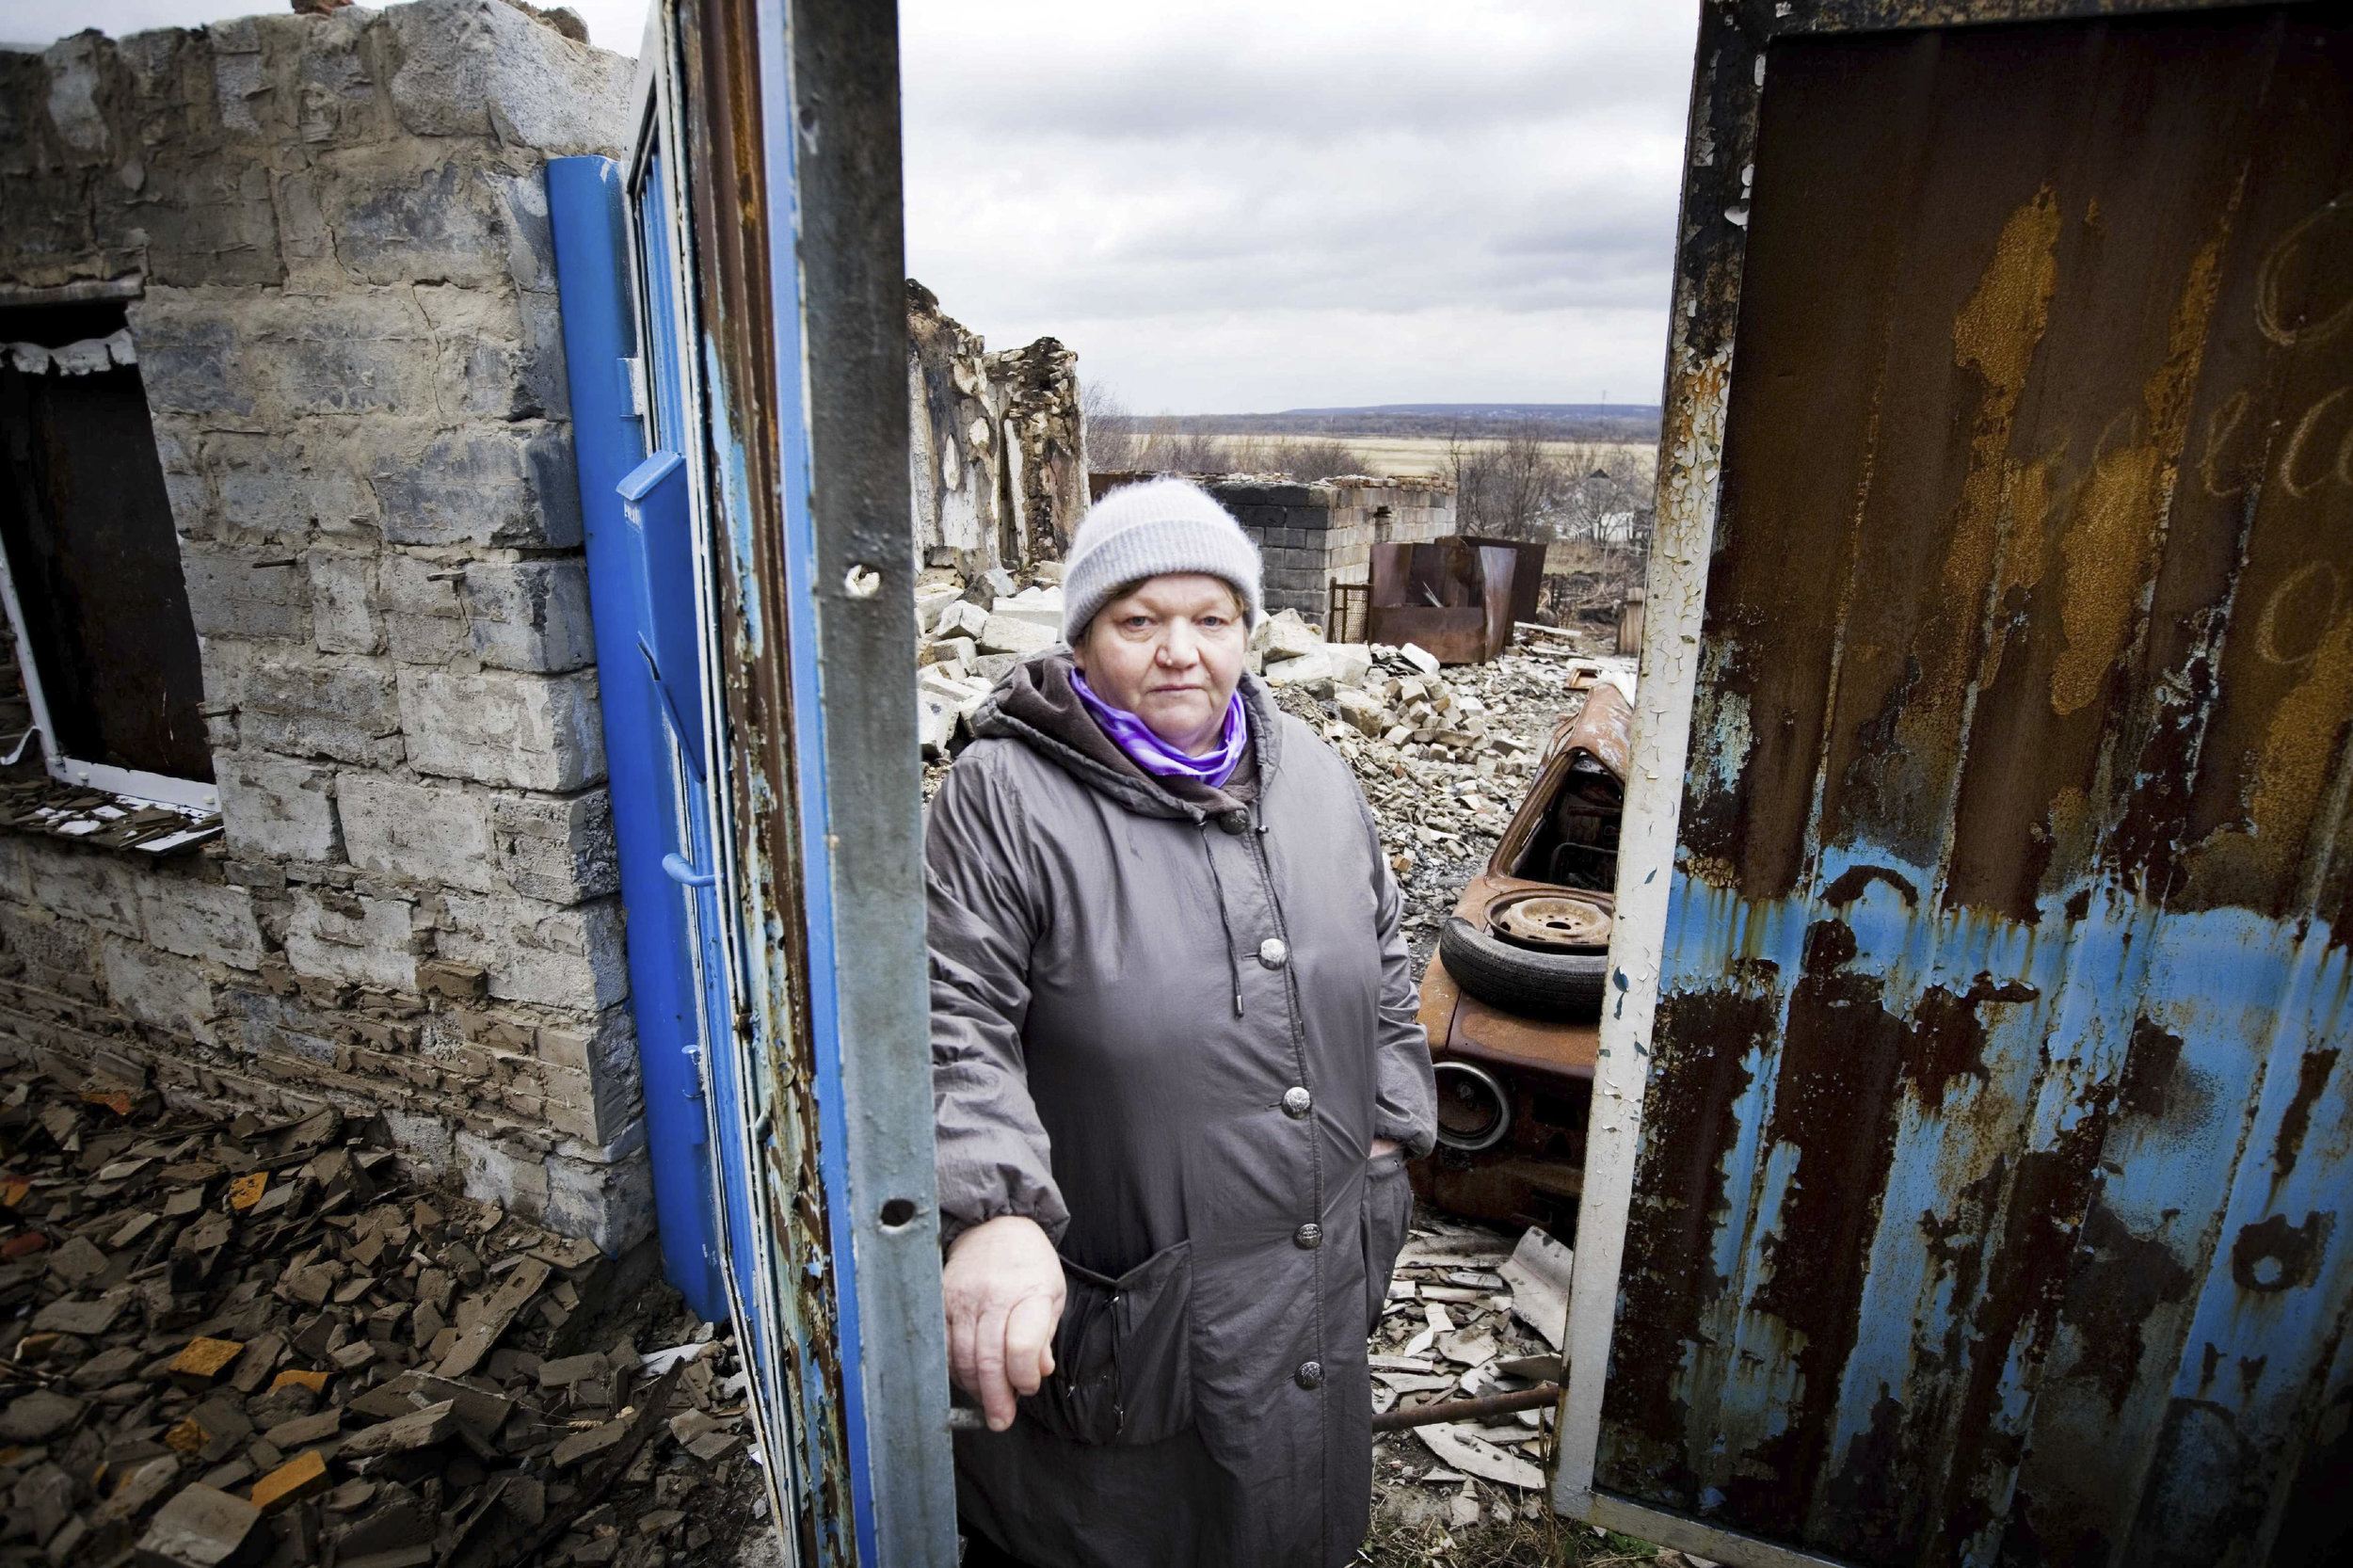 Lugansk, Ukraine Velentina stands at the ruins of her house, where her husband was killed as a result of conflict in Eastern Ukraine. The couple built the house with their own hands. The ICRC distributes reconstruction materials to residents affected by the conflict that began in 2014.